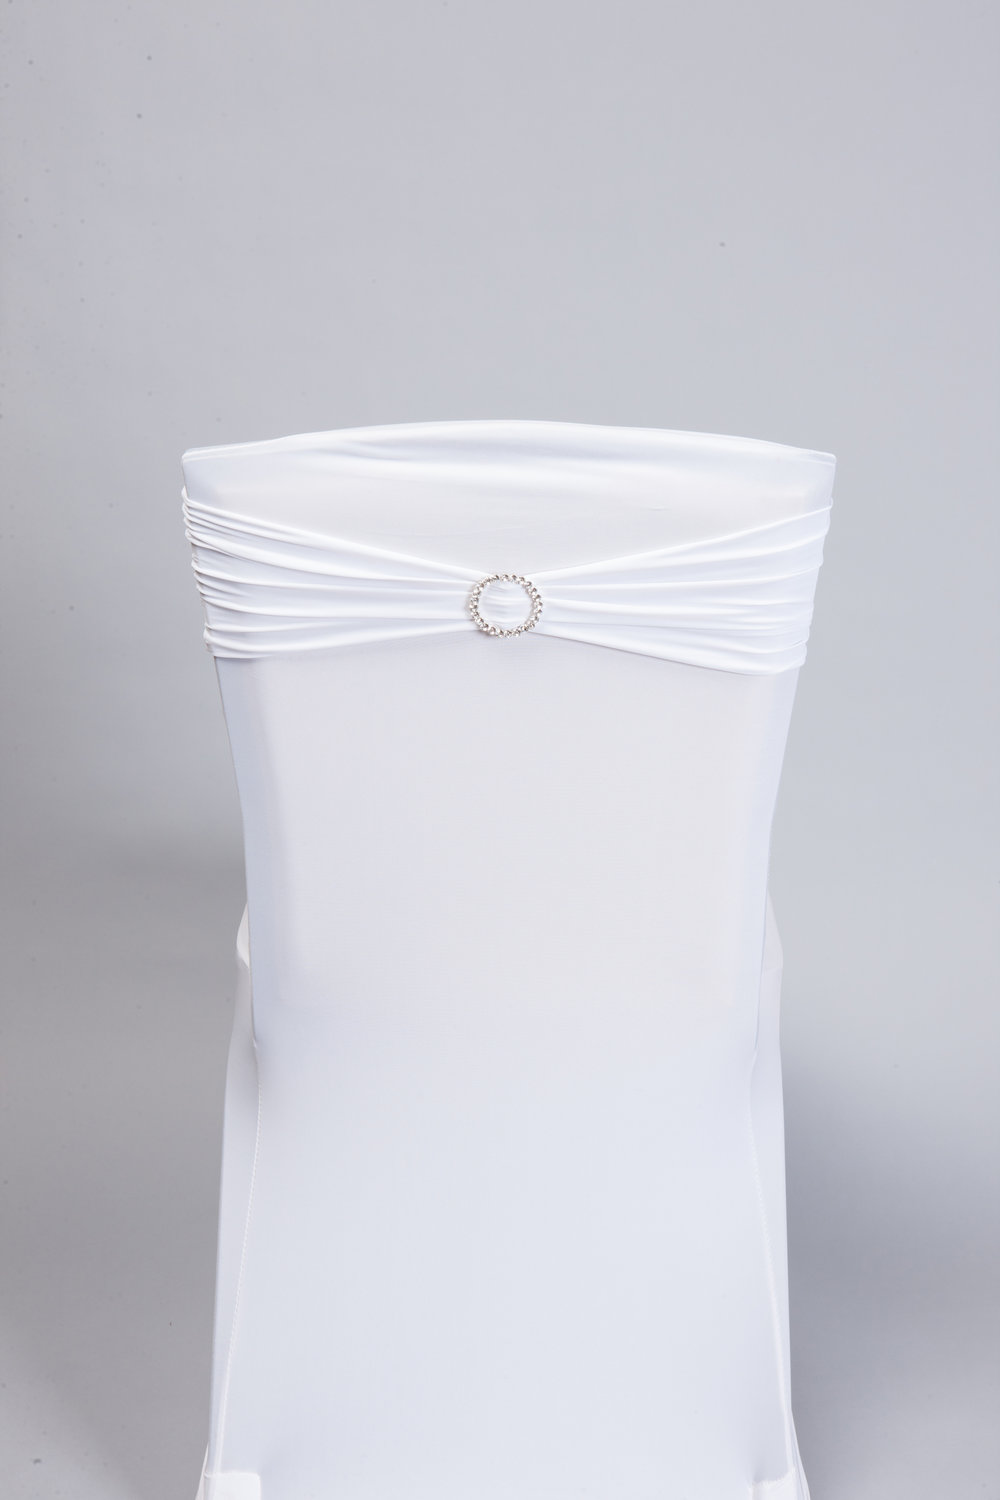 White Spandex Band with Bling Pin